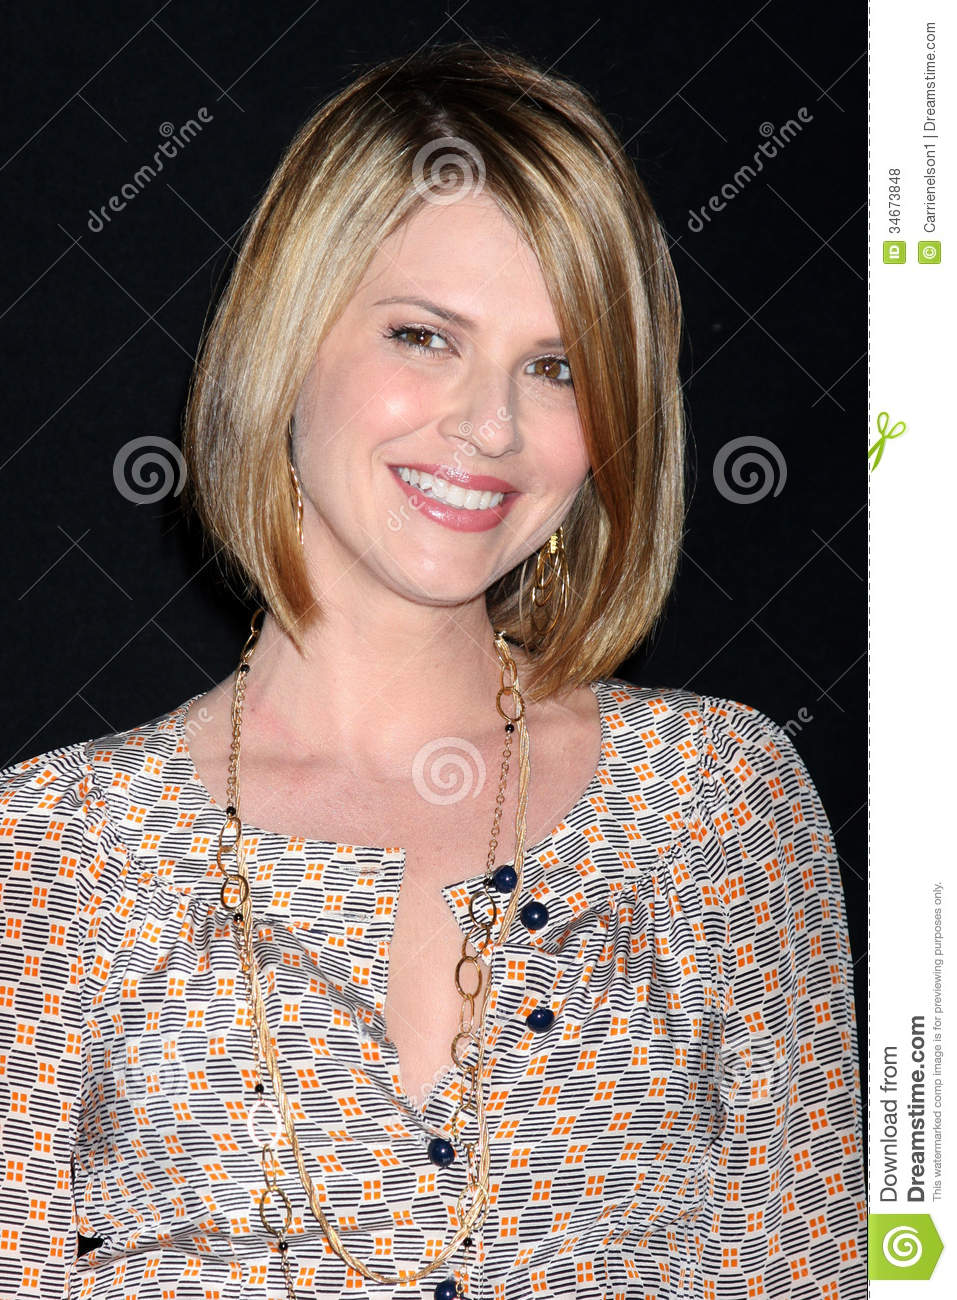 Pictures Of Megan Ward Pictures Of Celebrities